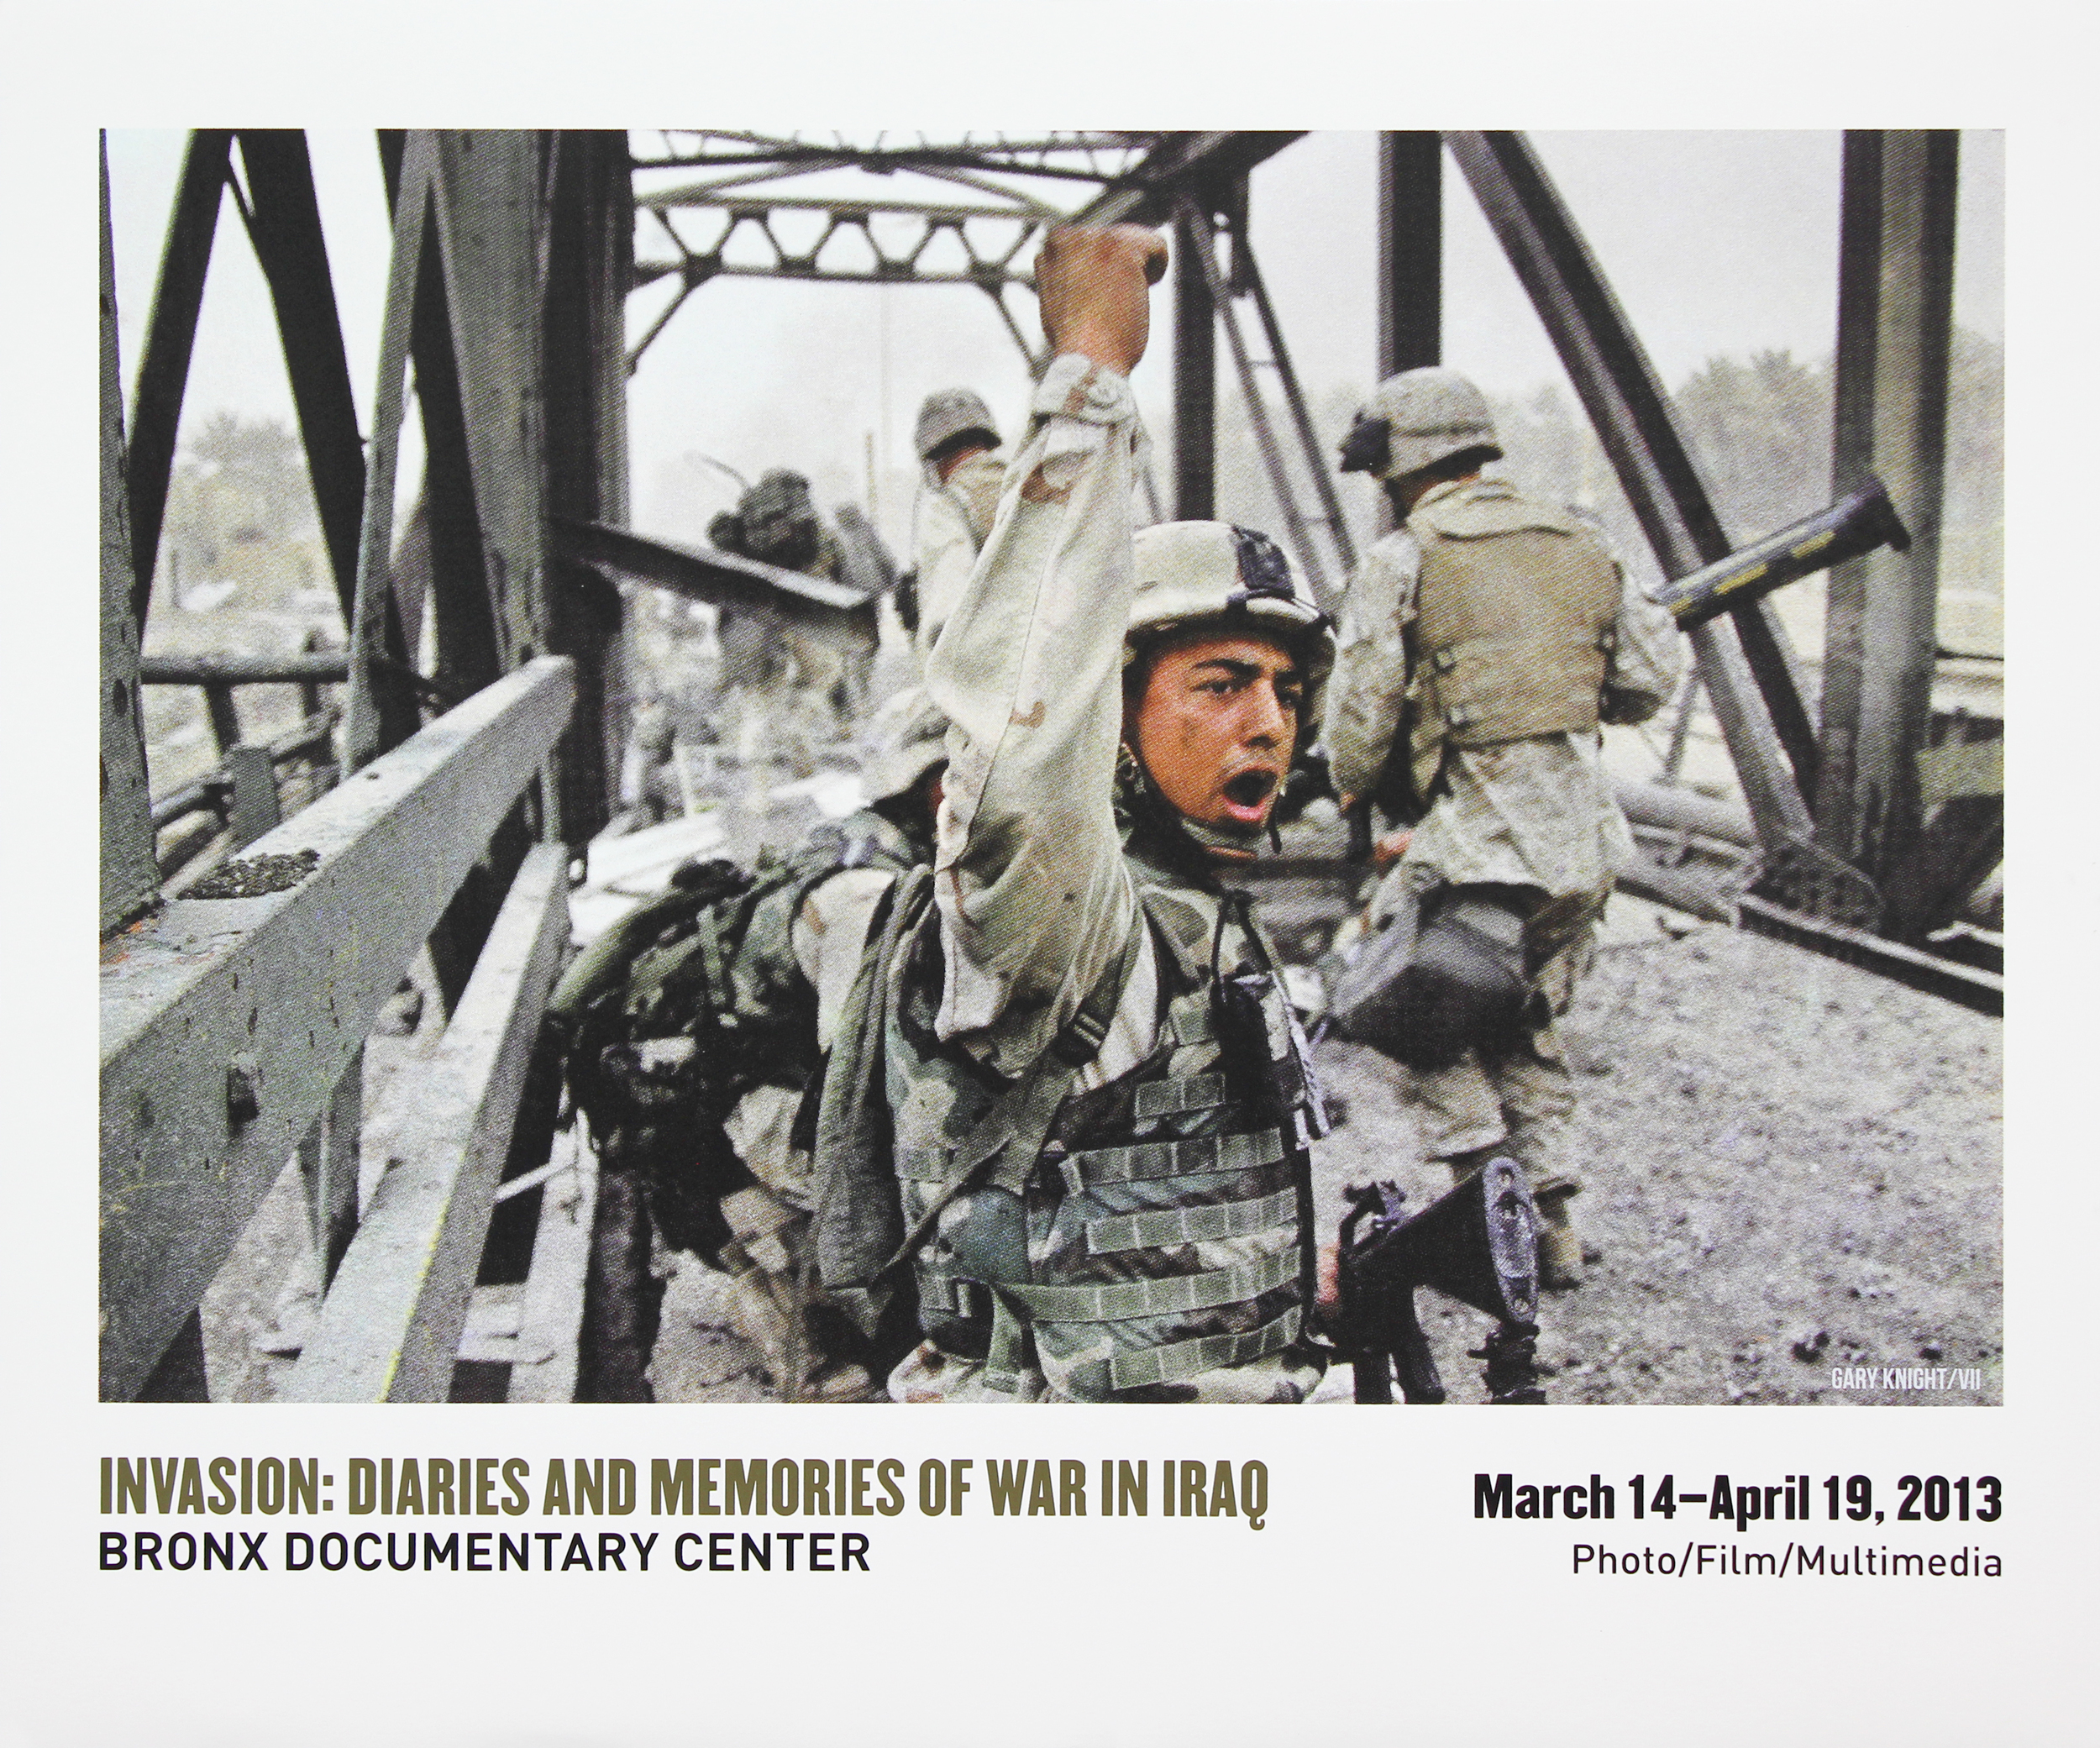 Bronx Doc Center - Invasion: Diaries and Memories of War in Iraq